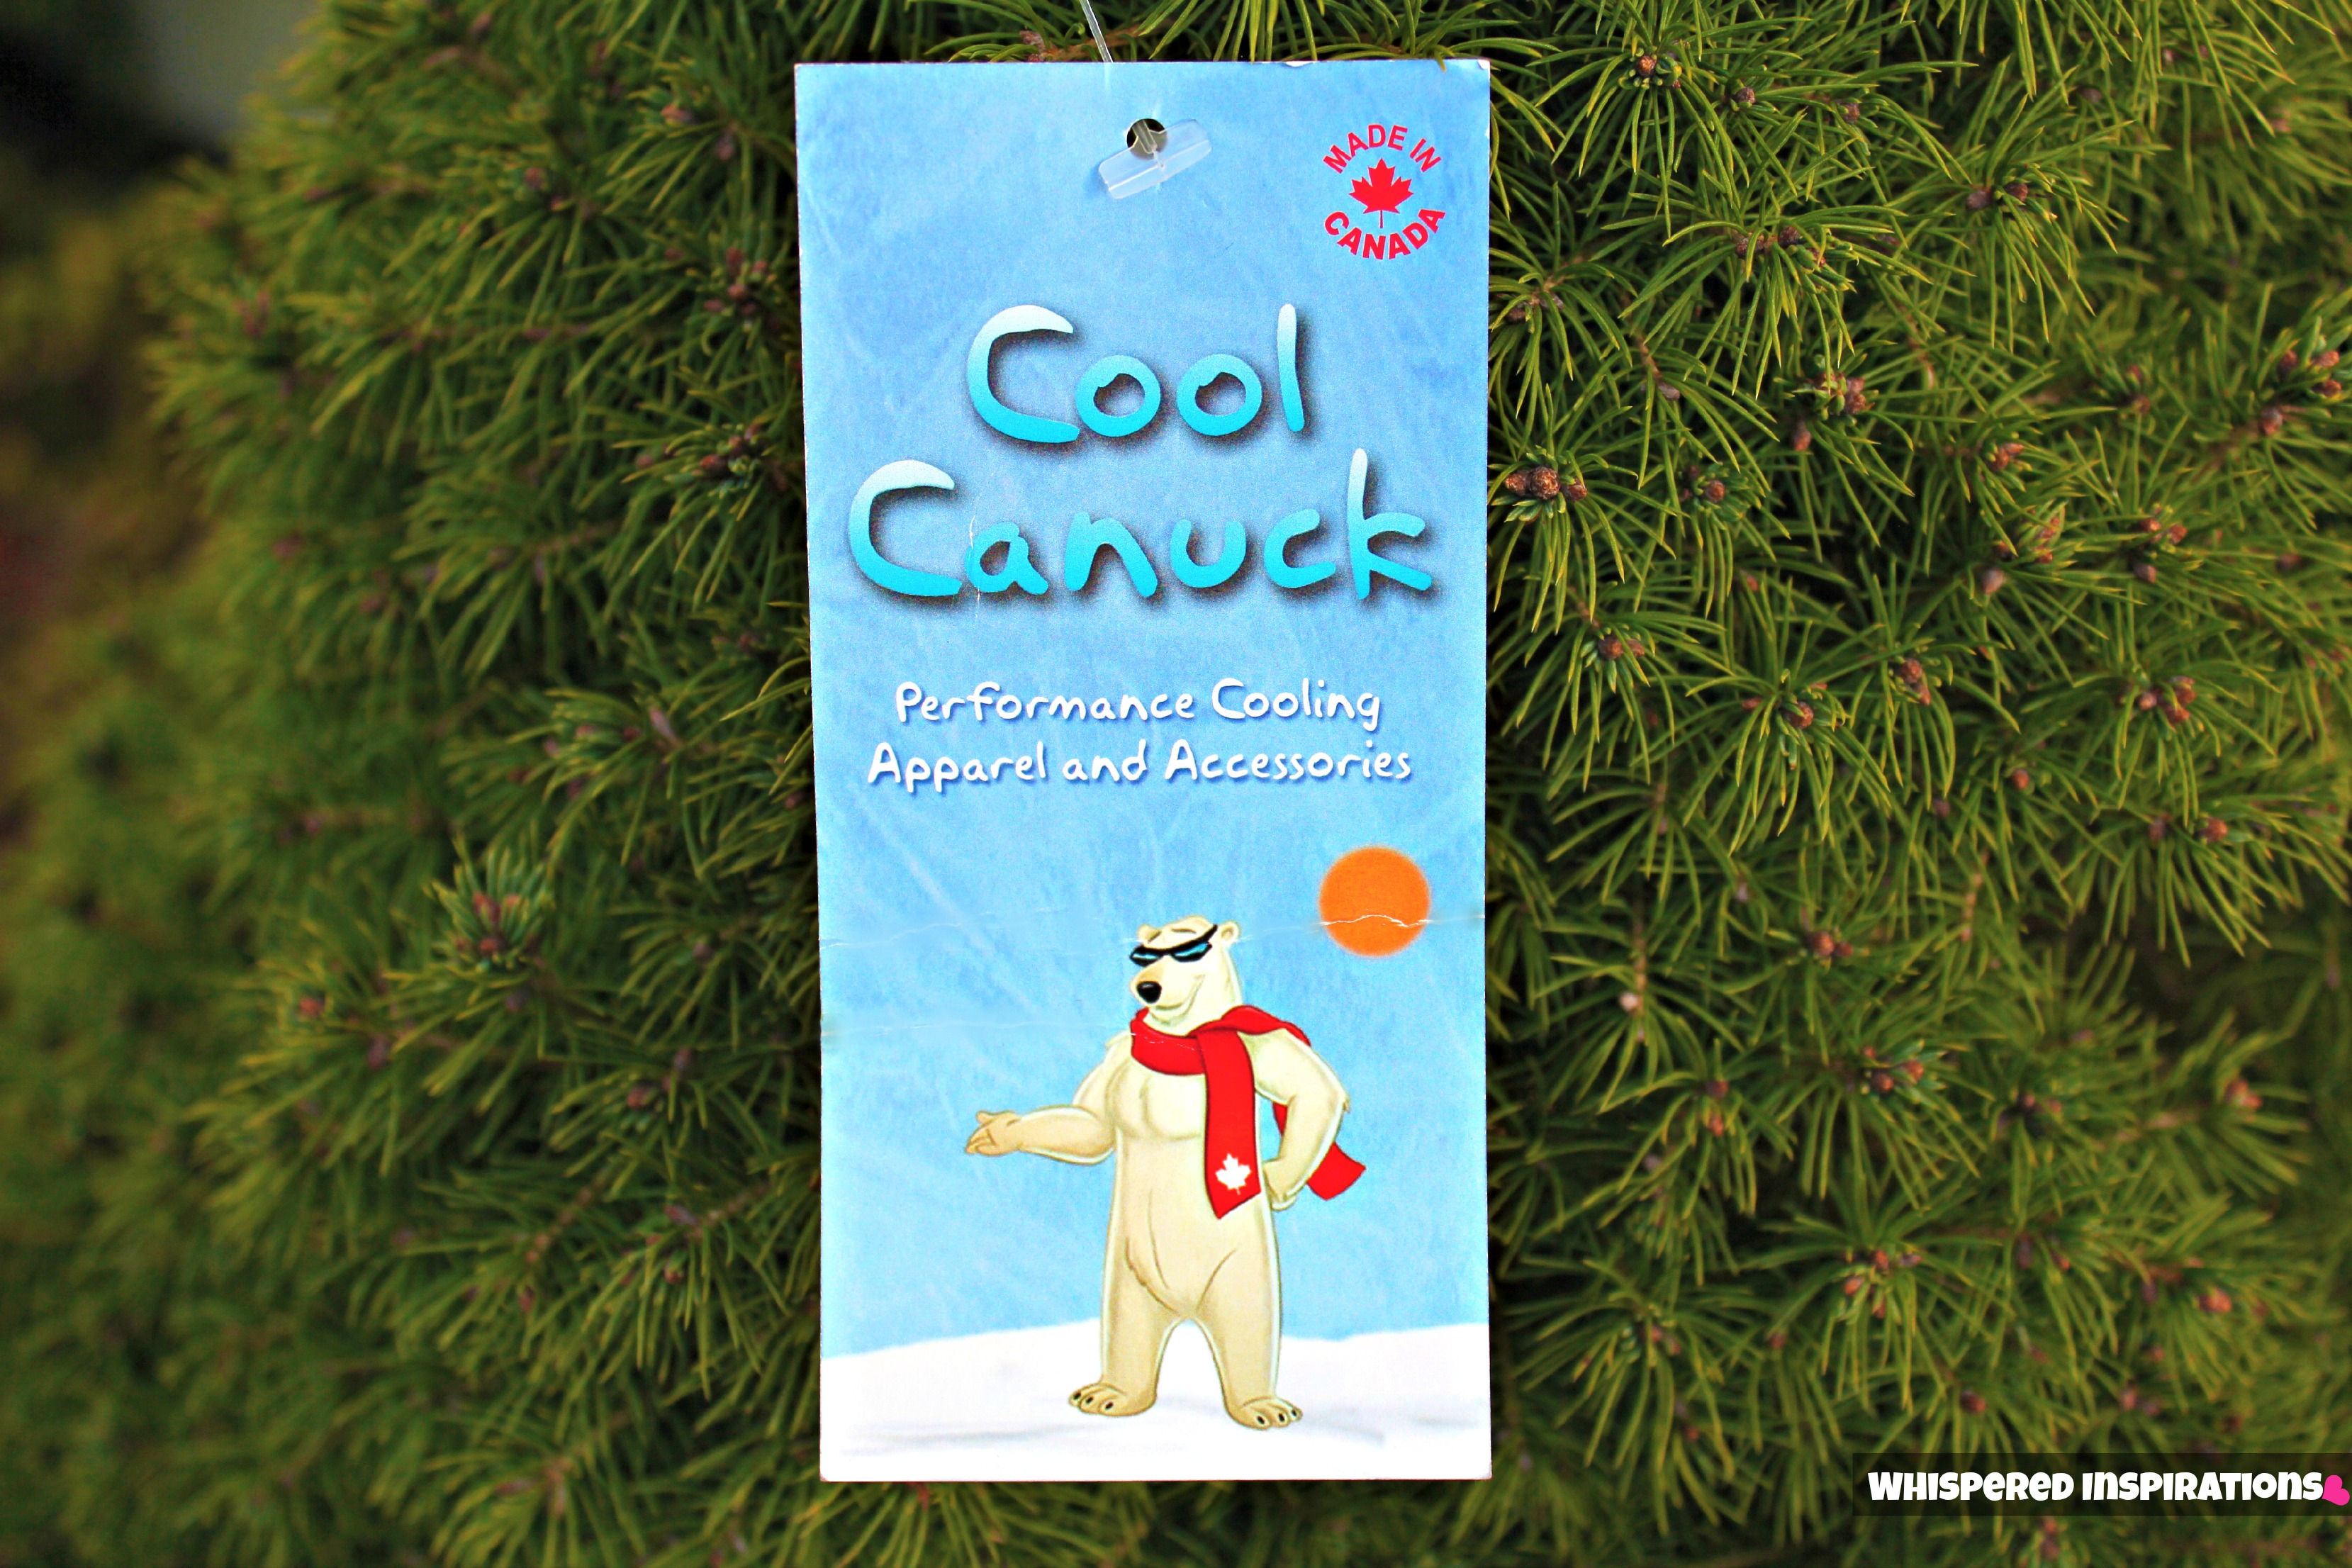 Cool Canuck: Men's Short Sleeve Pro T-Shirt Review & Giveaway! #HolidayGiftGuide